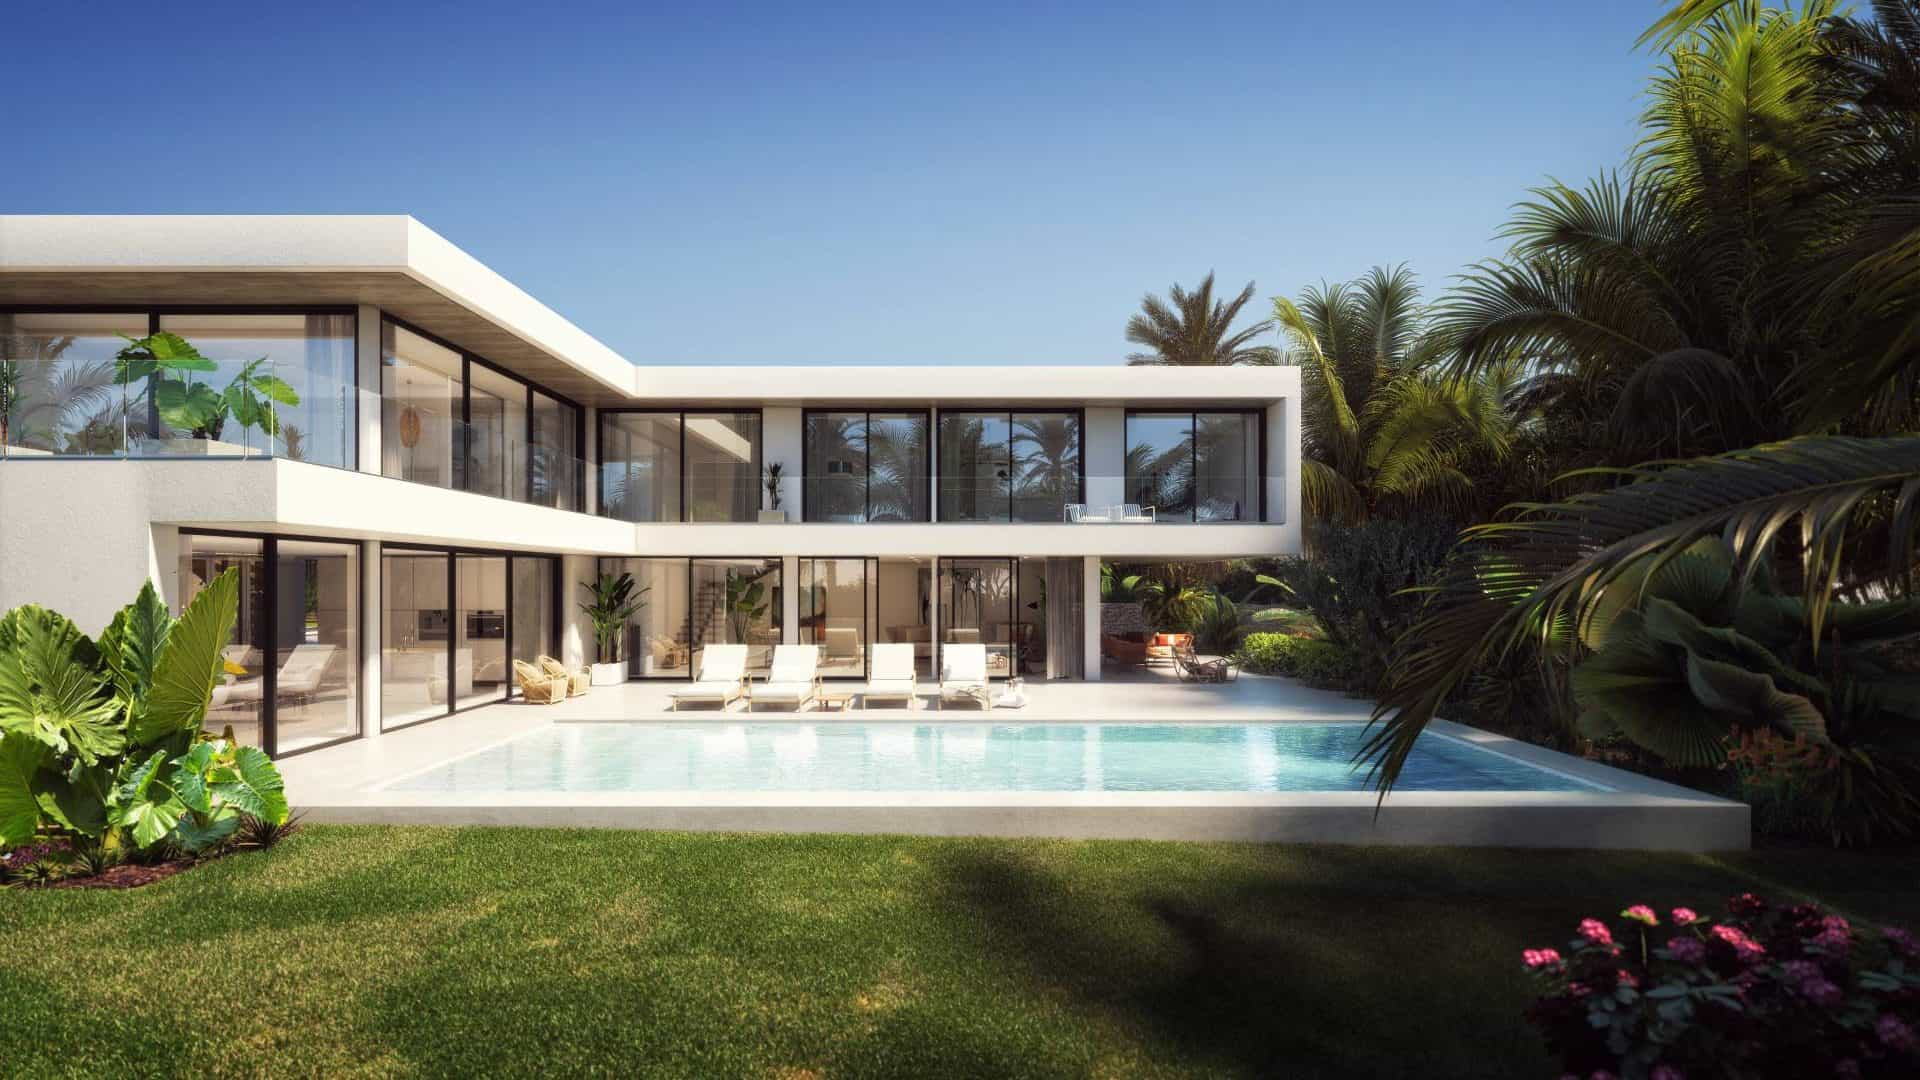 Plot Talamanca with modern luxury villa project